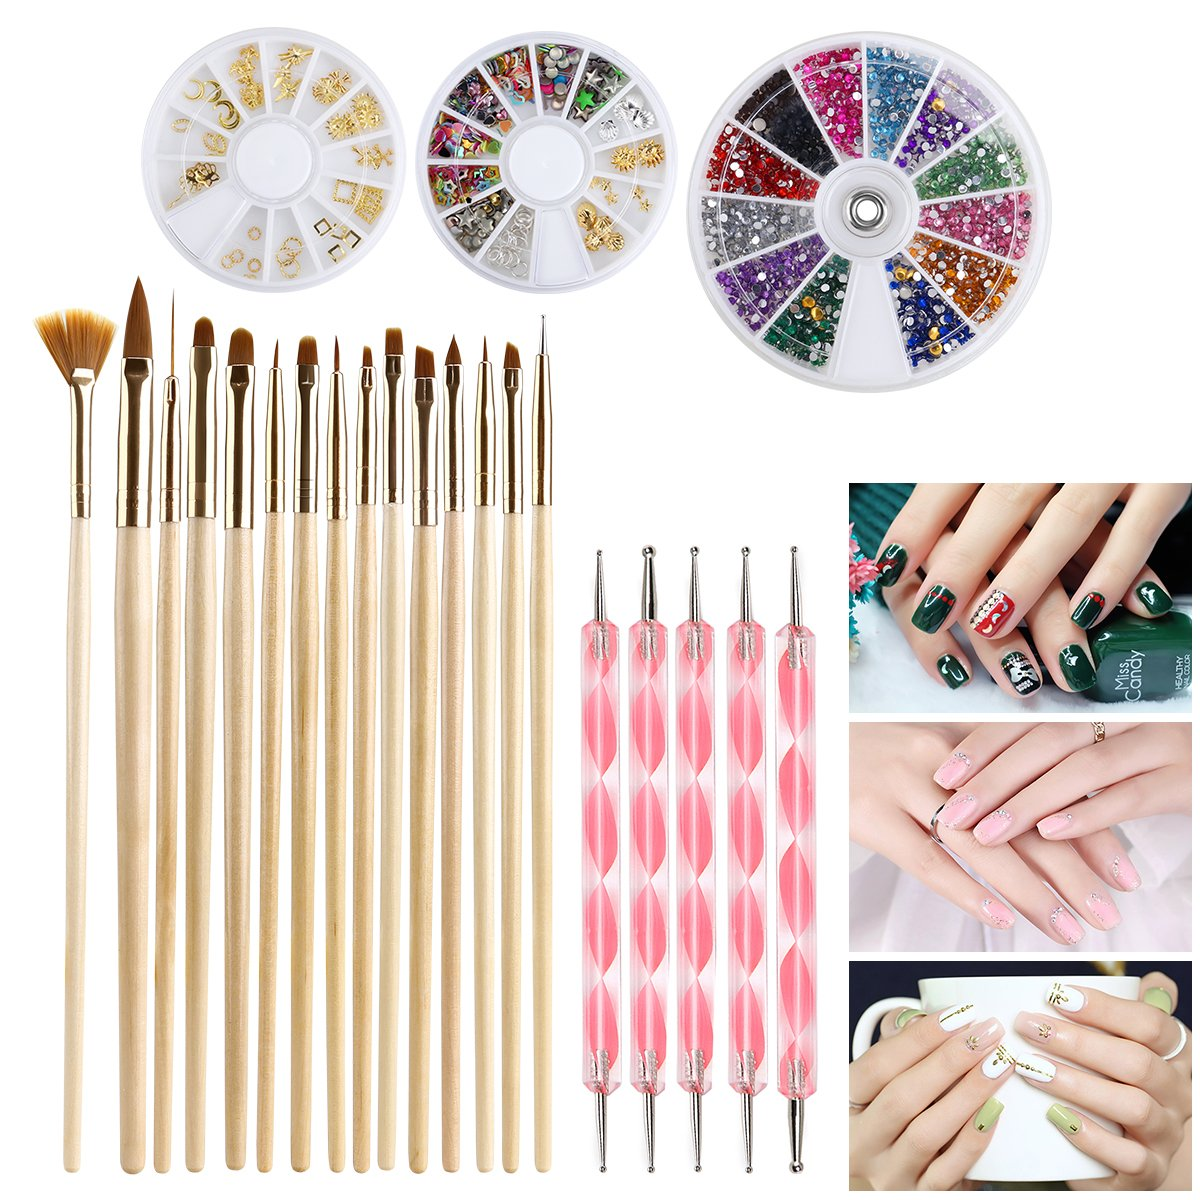 Nail Art Kit Includes 15 Nail Art Brushes 5 Dotting Pens